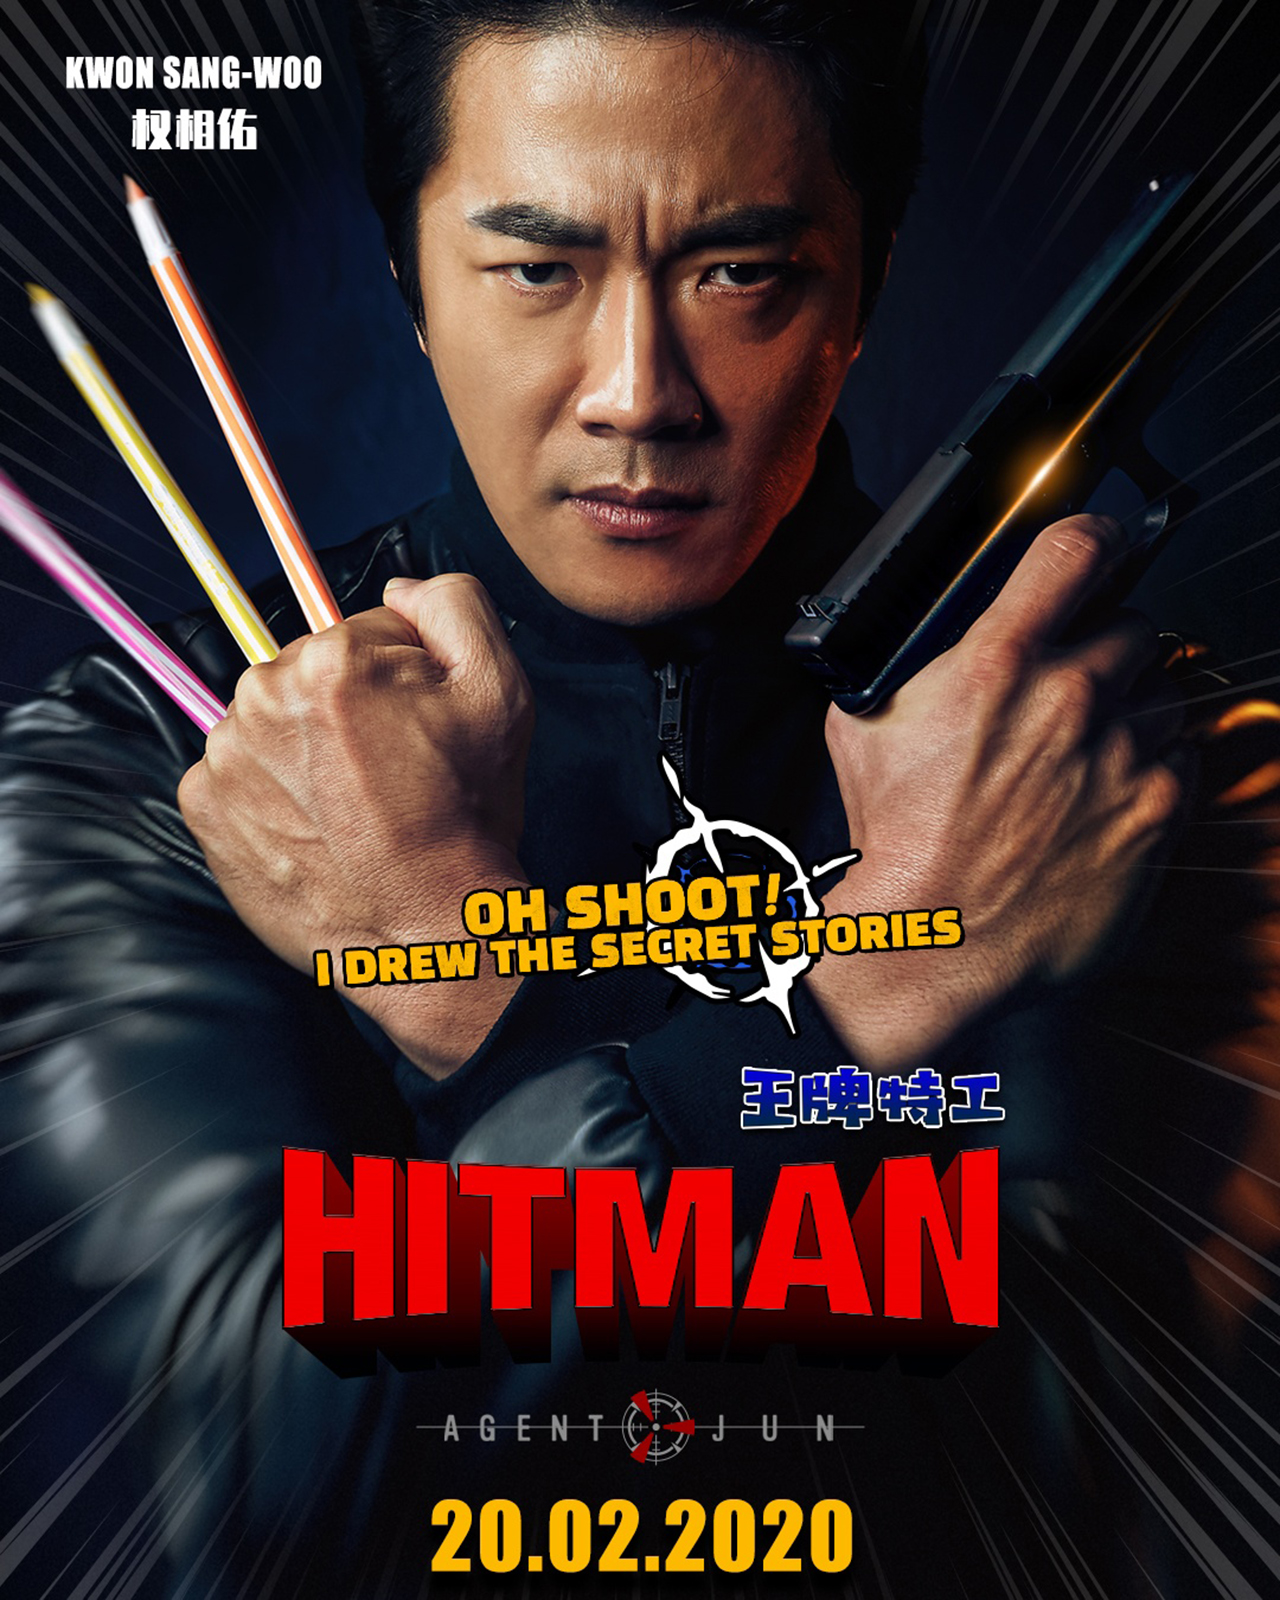 Filem Korea Paling Best 2020-Hitman : Agent Jun